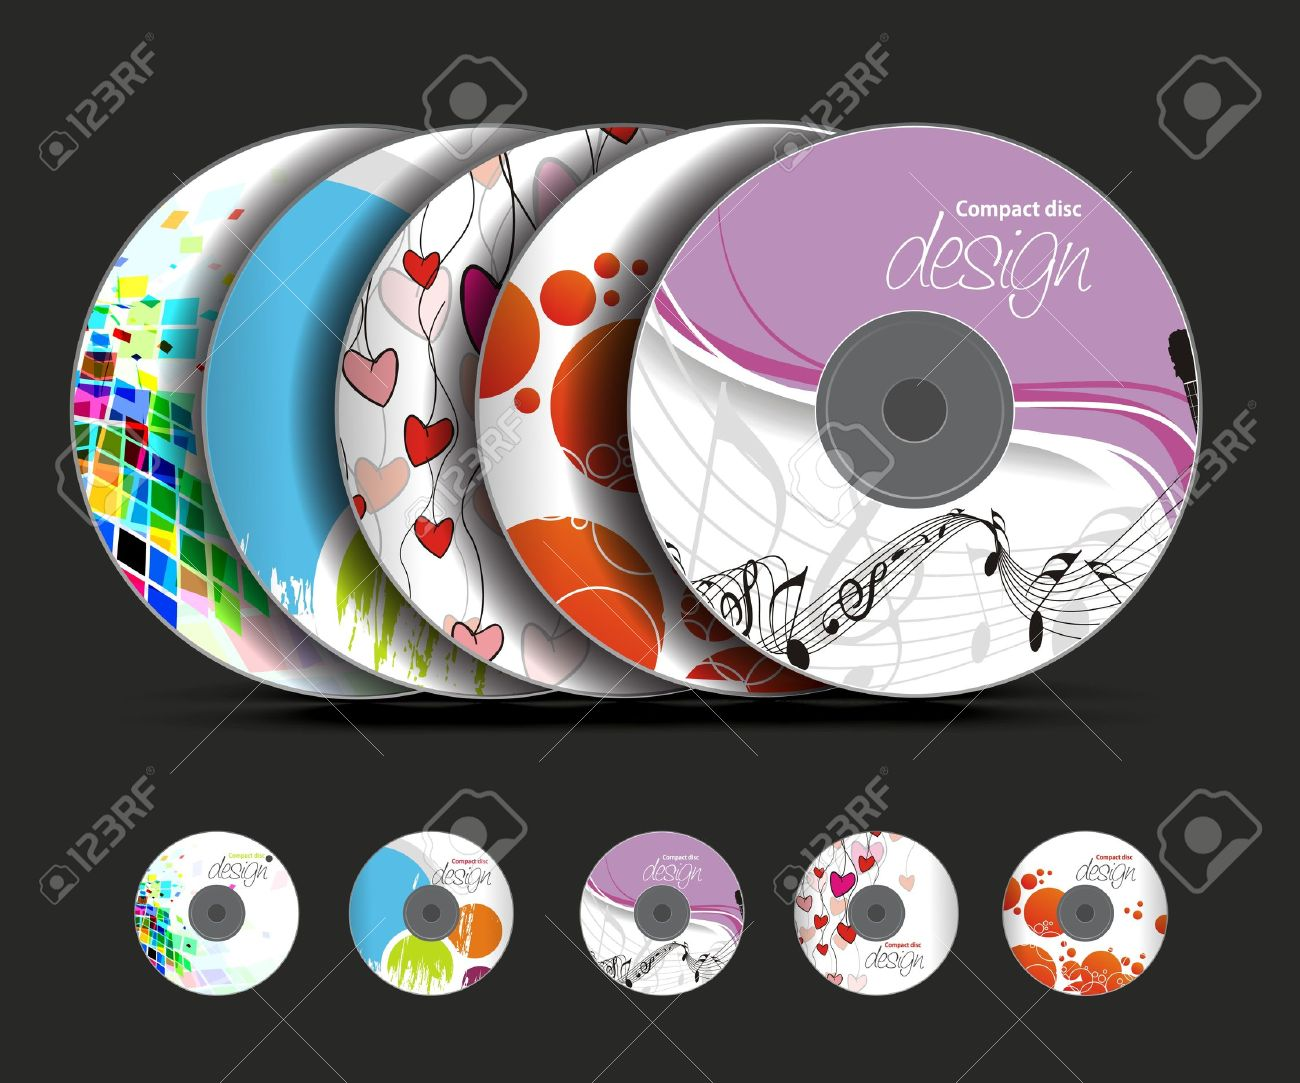 set of vector cd cover design template design royalty free cliparts